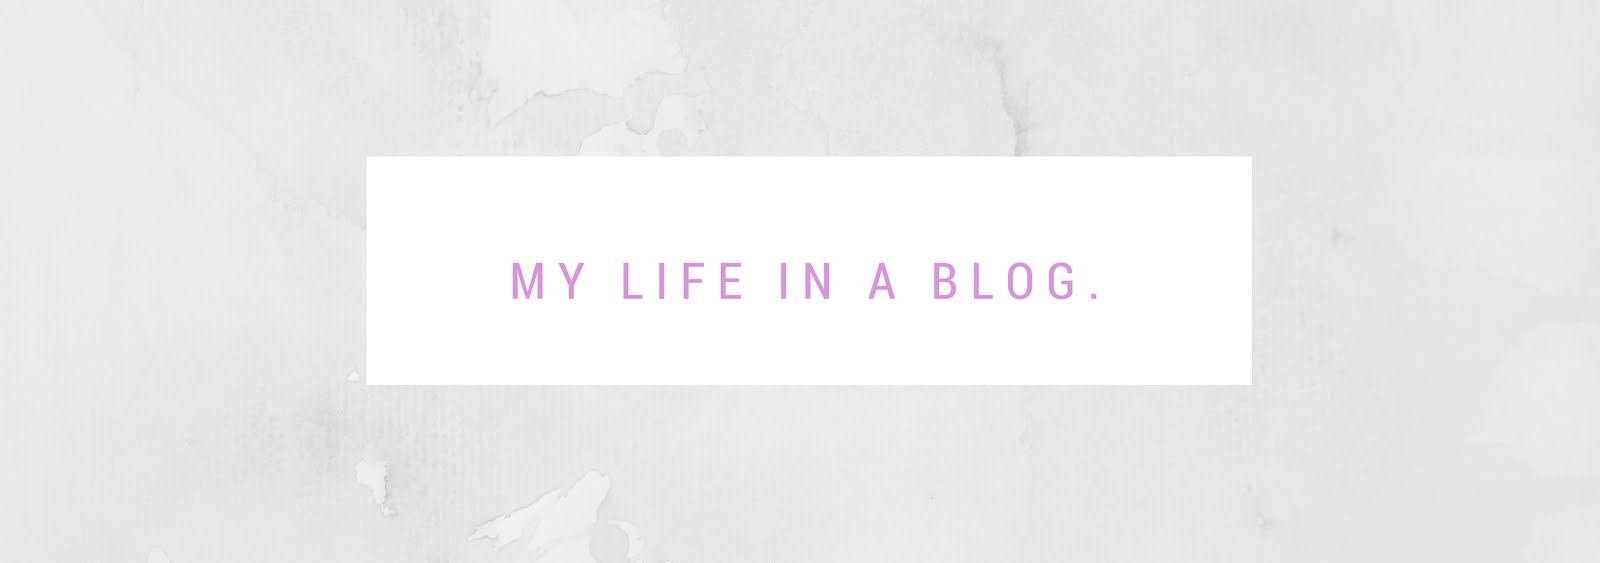 My Life in a Blog!